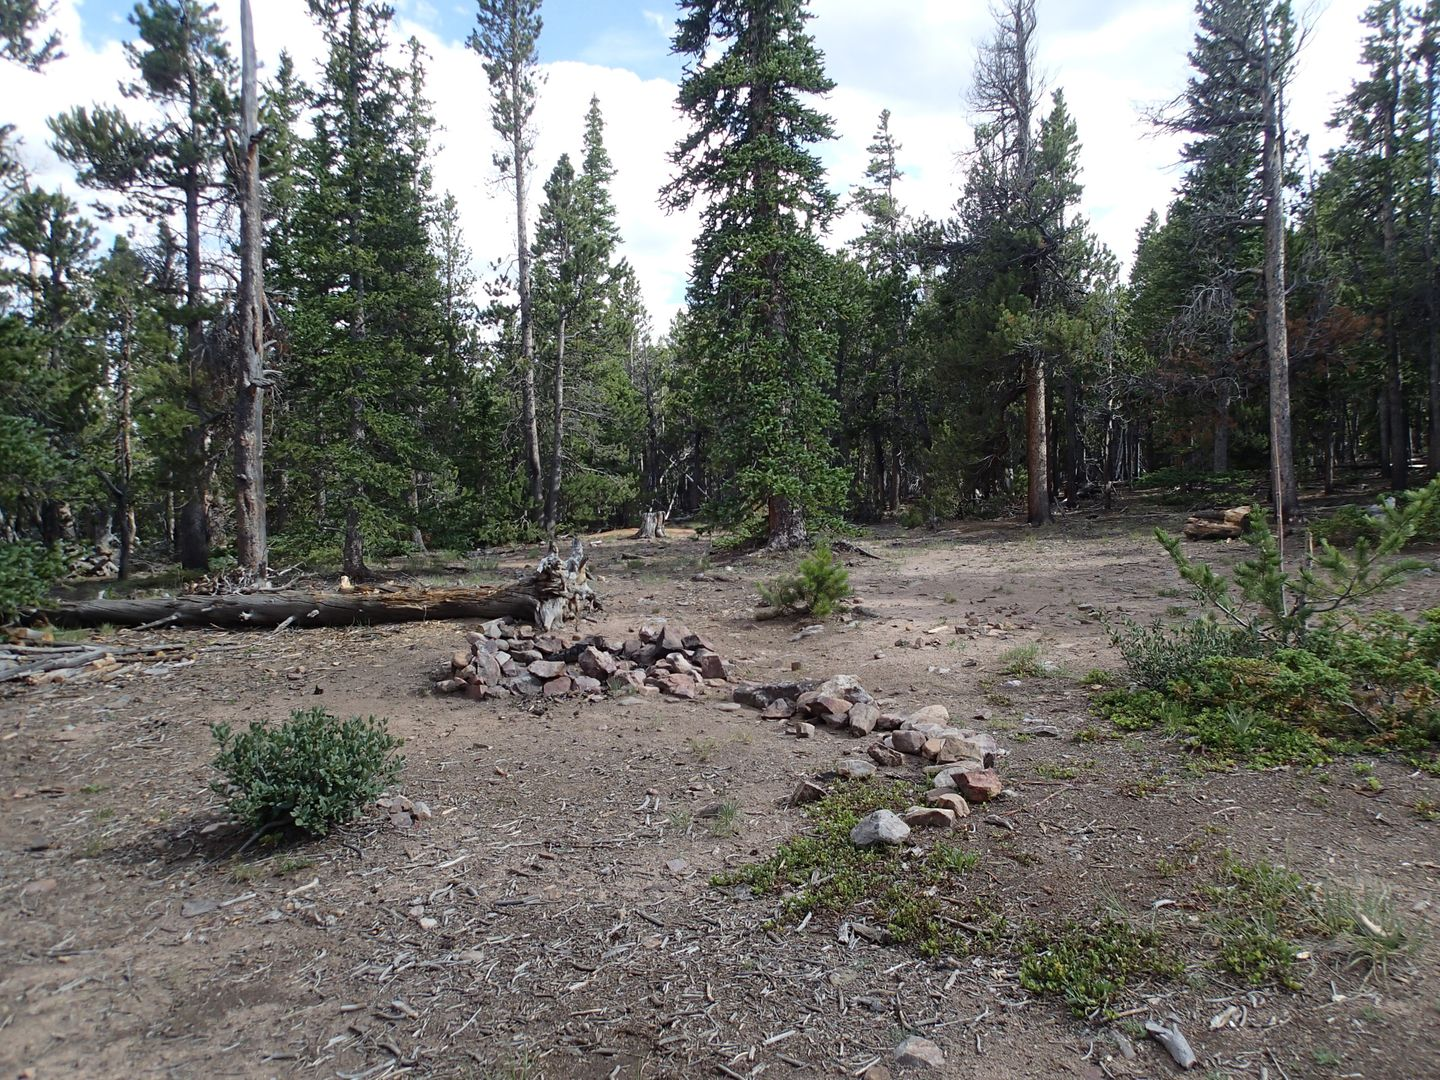 Camping: Brown's Pass